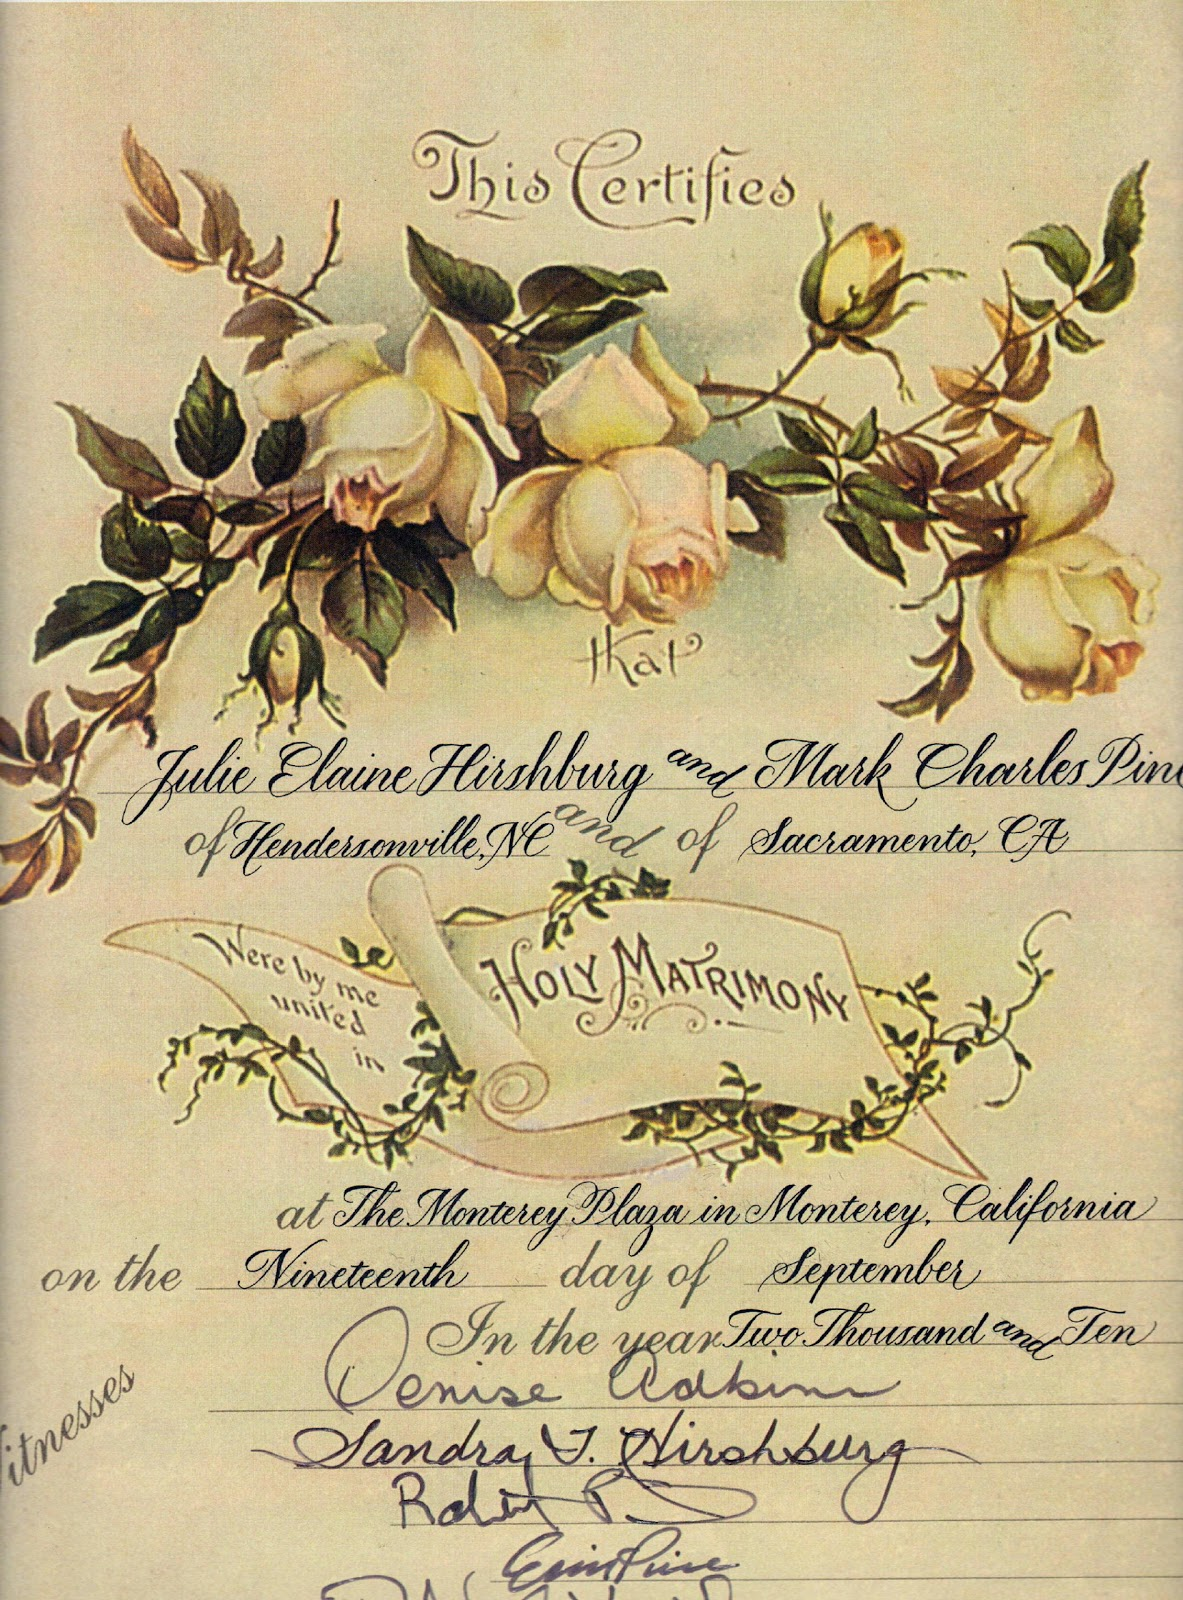 historic wedding certificate wedding certificate I first meet the client and she presented me with a certificate that was 8 10